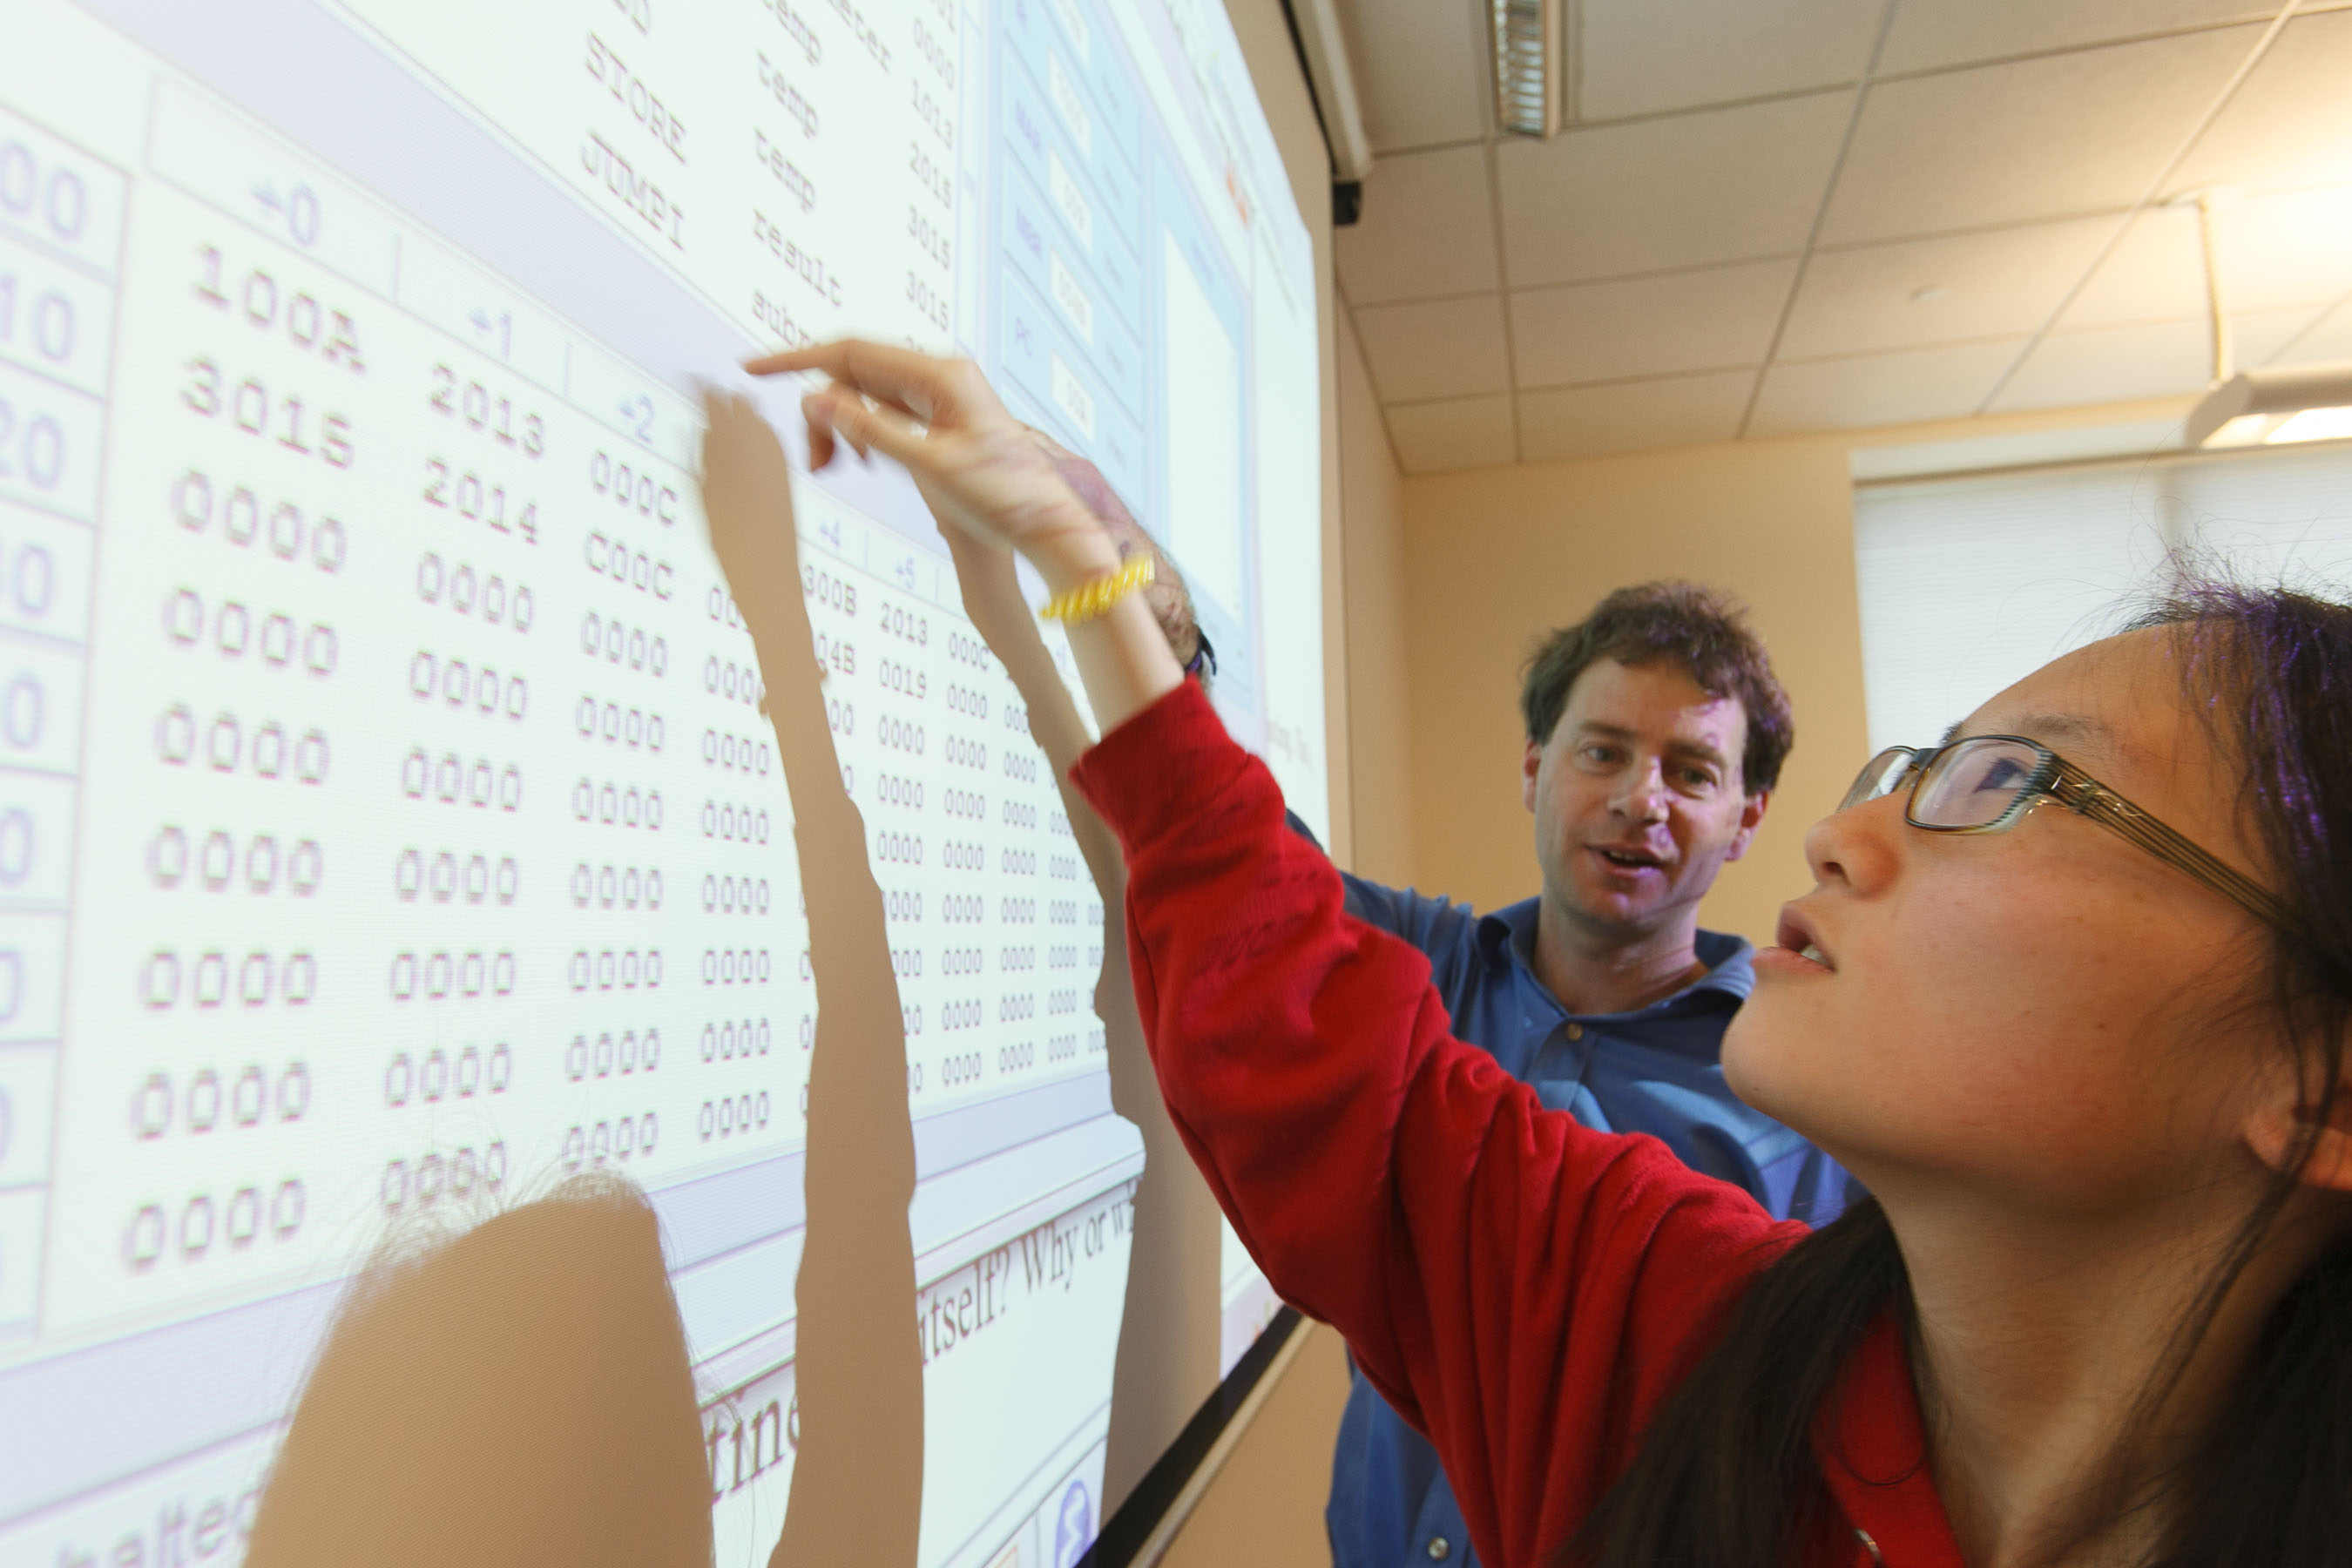 Student and teacher at a smartboard